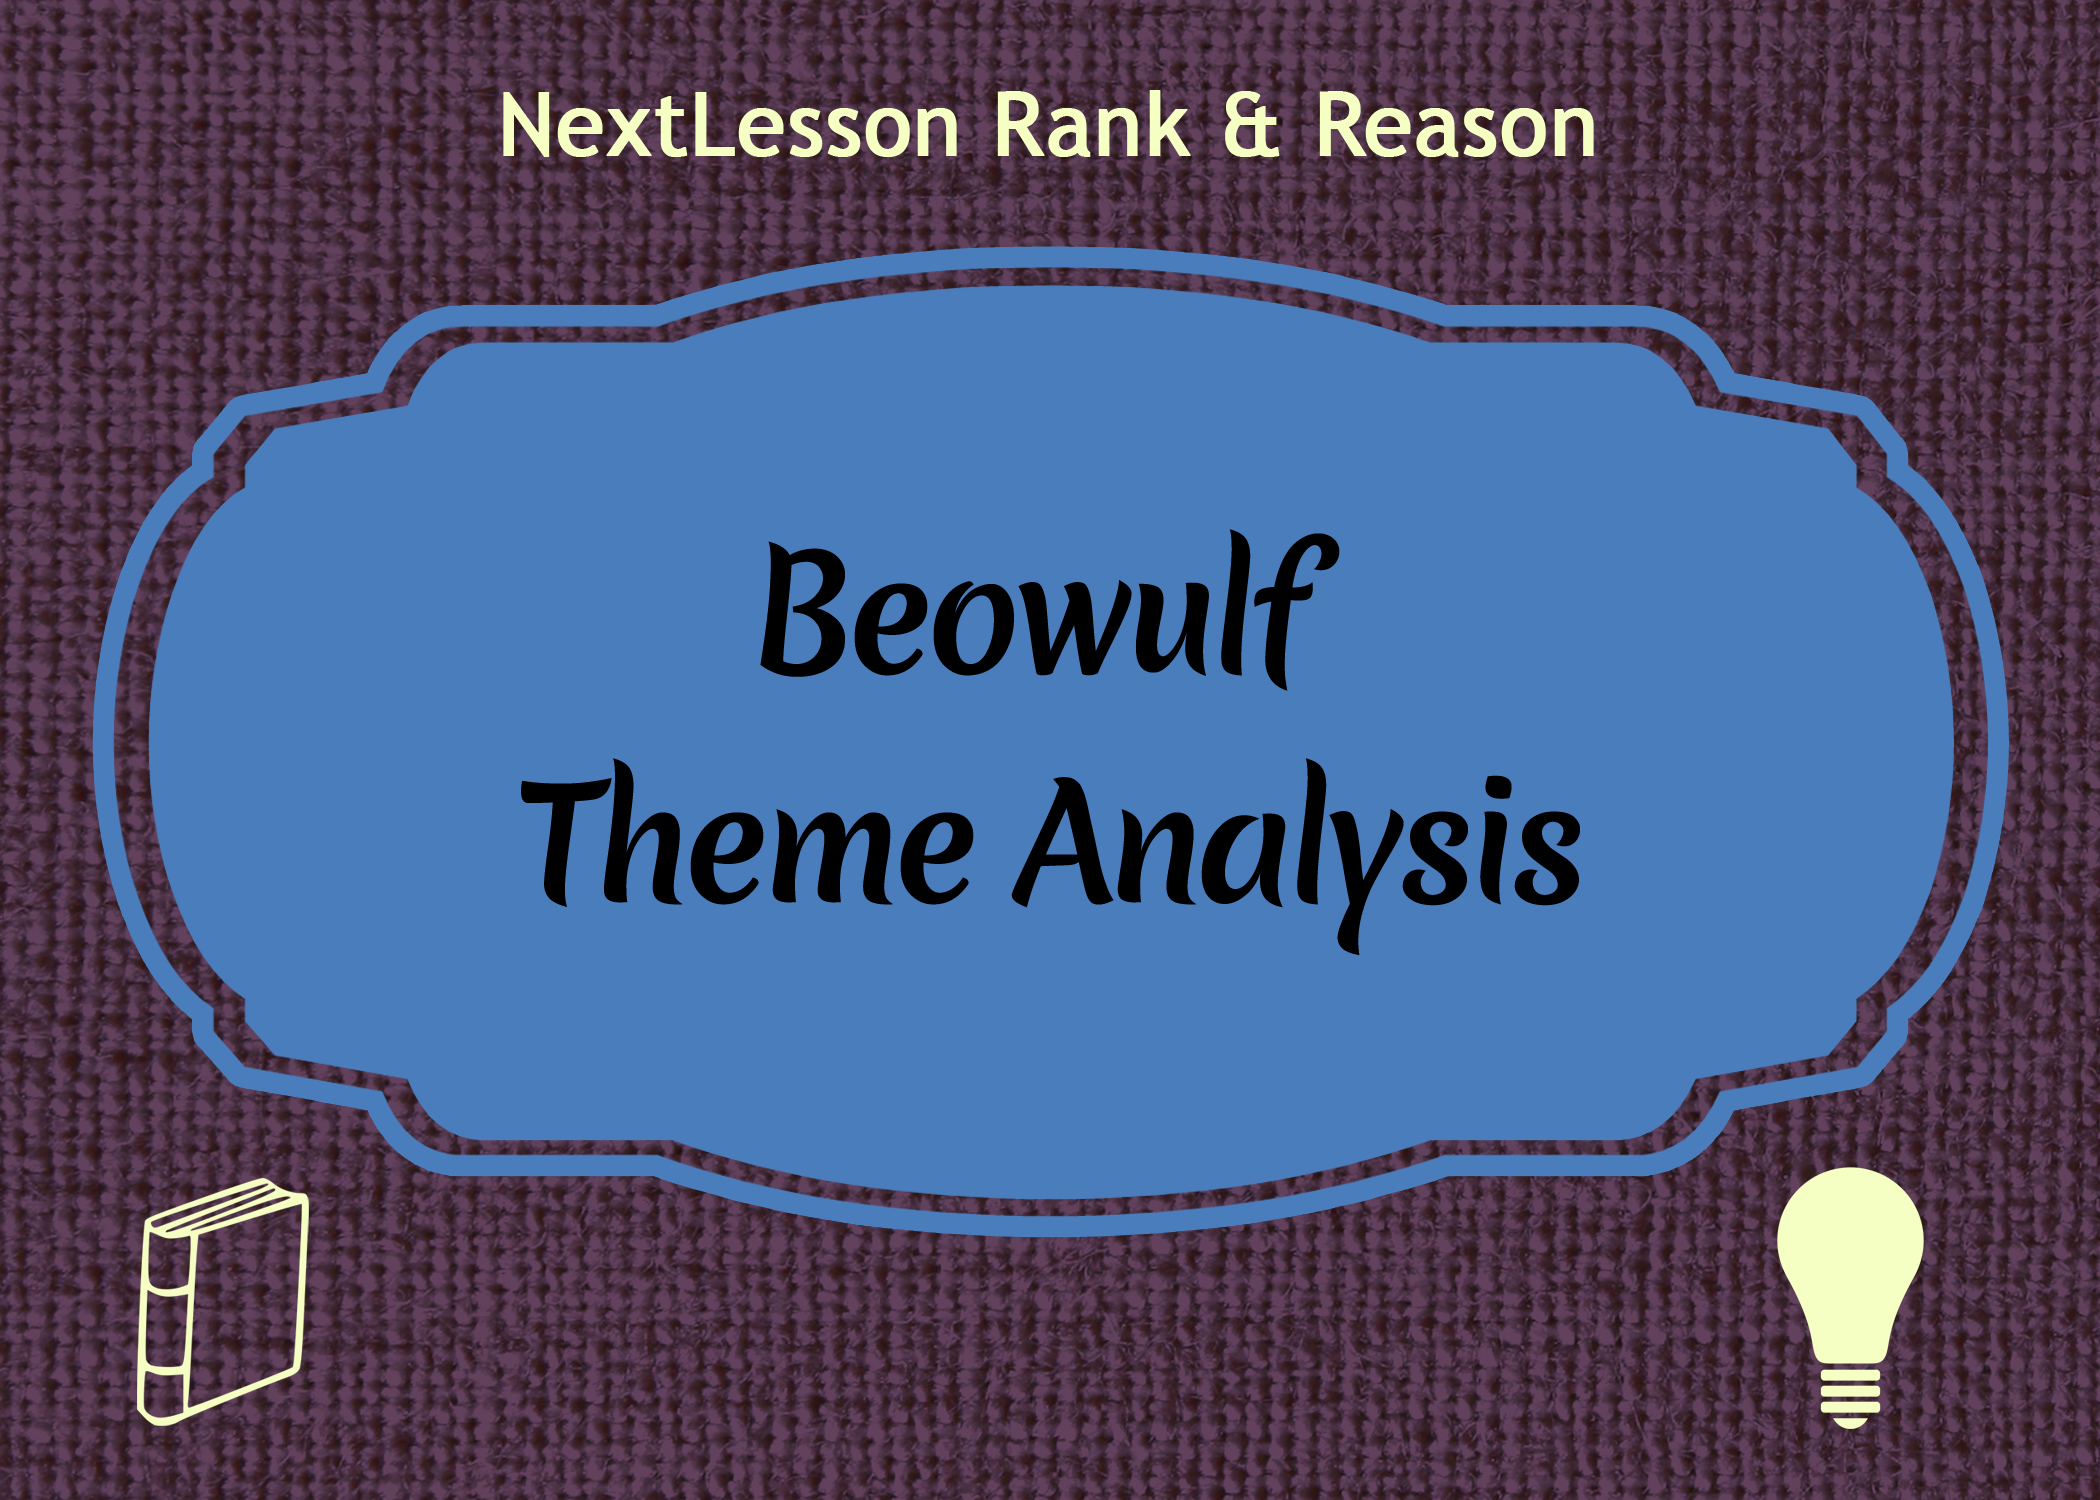 an analysis of the theme of bravery in beowulf Beowulf bravery quotes: examples & analysis beowulf literary criticism & critical analysis universal themes in beowulf courage & bravery in beowulf.